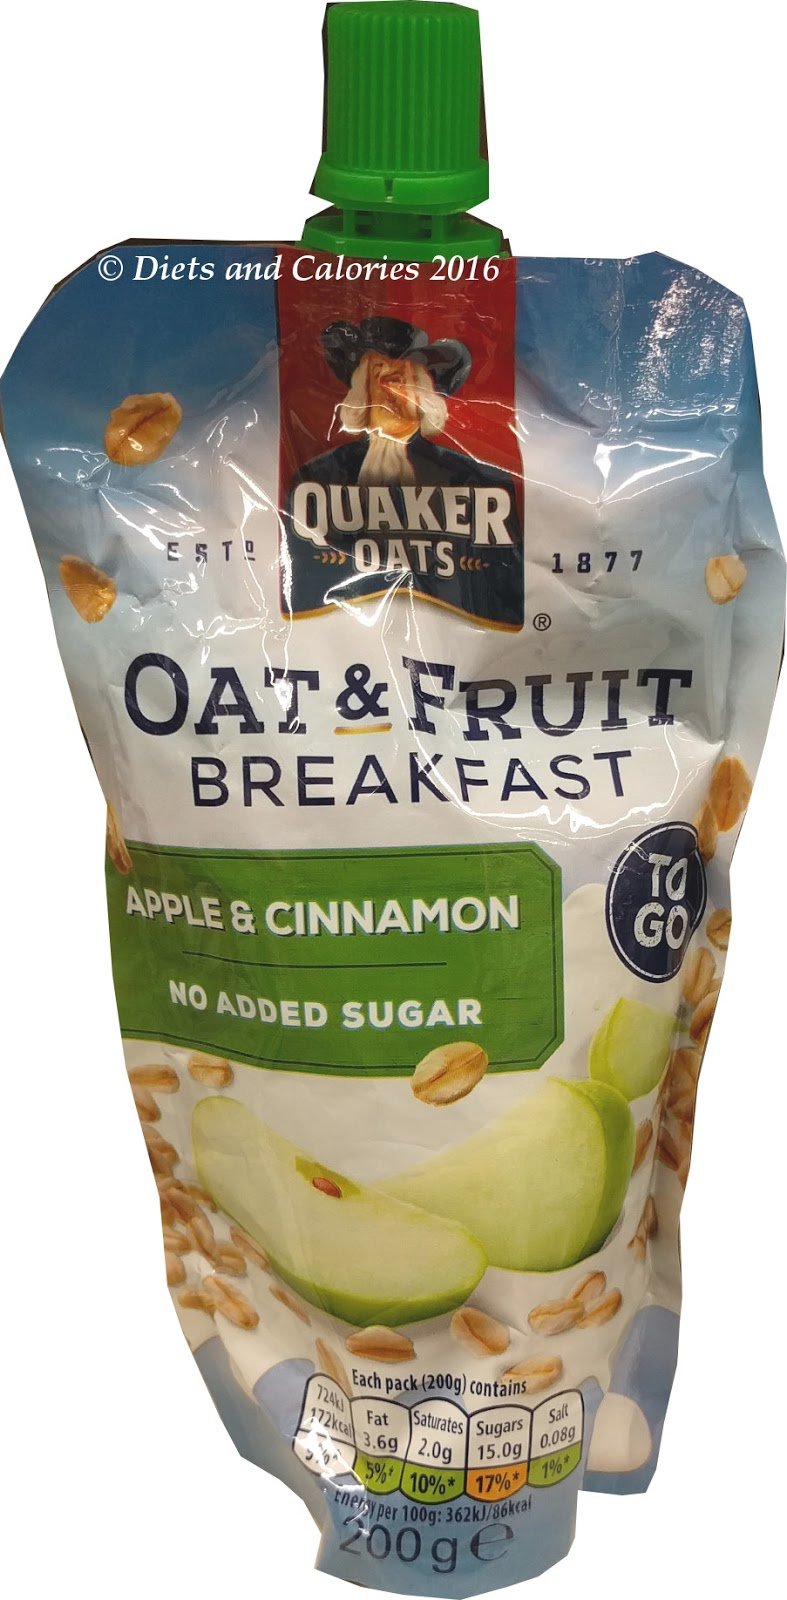 Quaker Oats Rice Cakes Tomato Basil Nutrition Facts